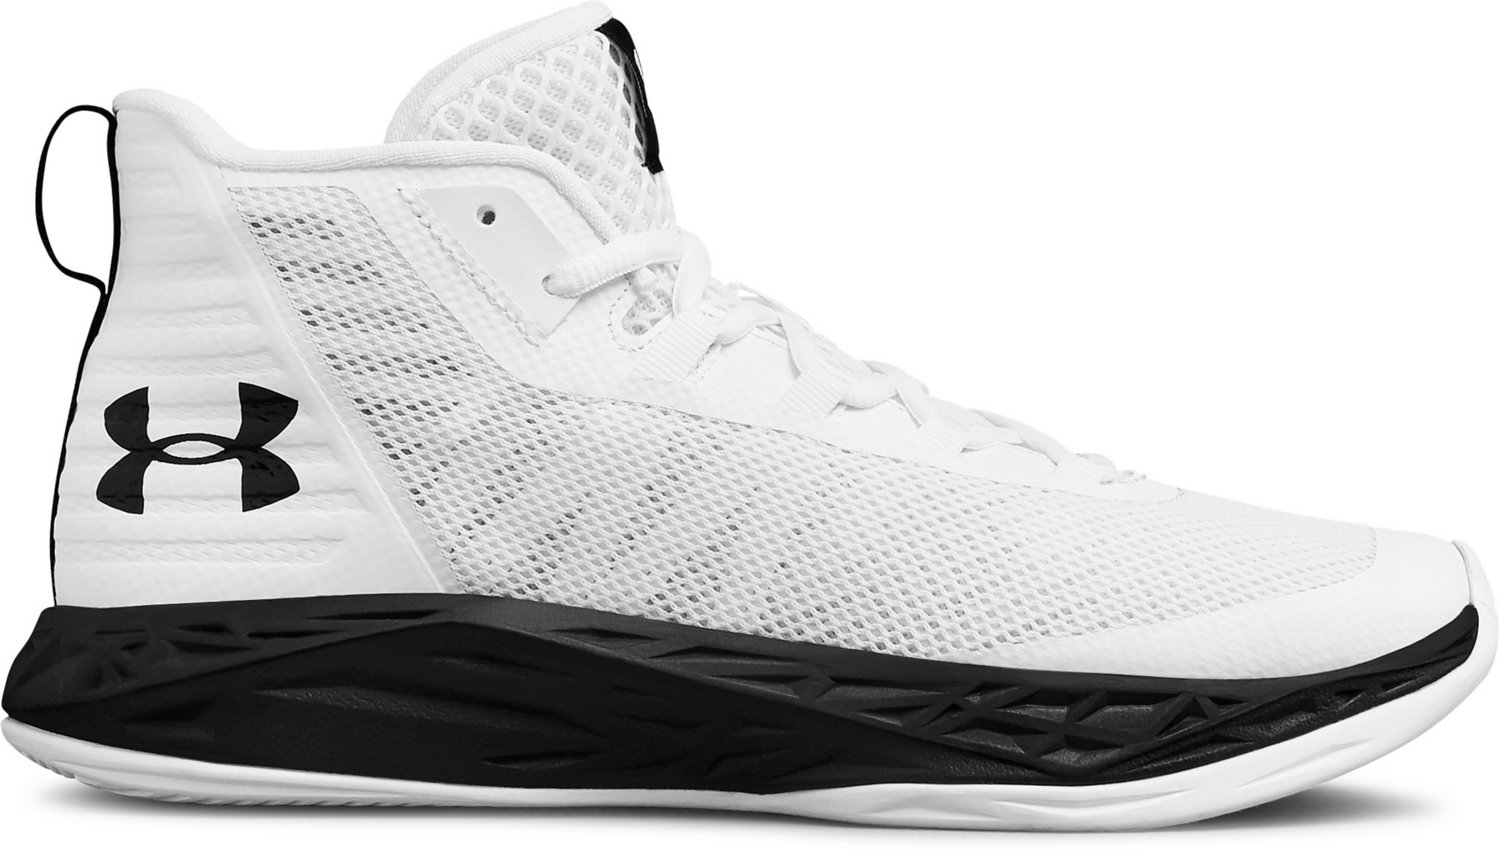 Display product reviews for Under Armour Women's Jet Mid Basketball Shoes